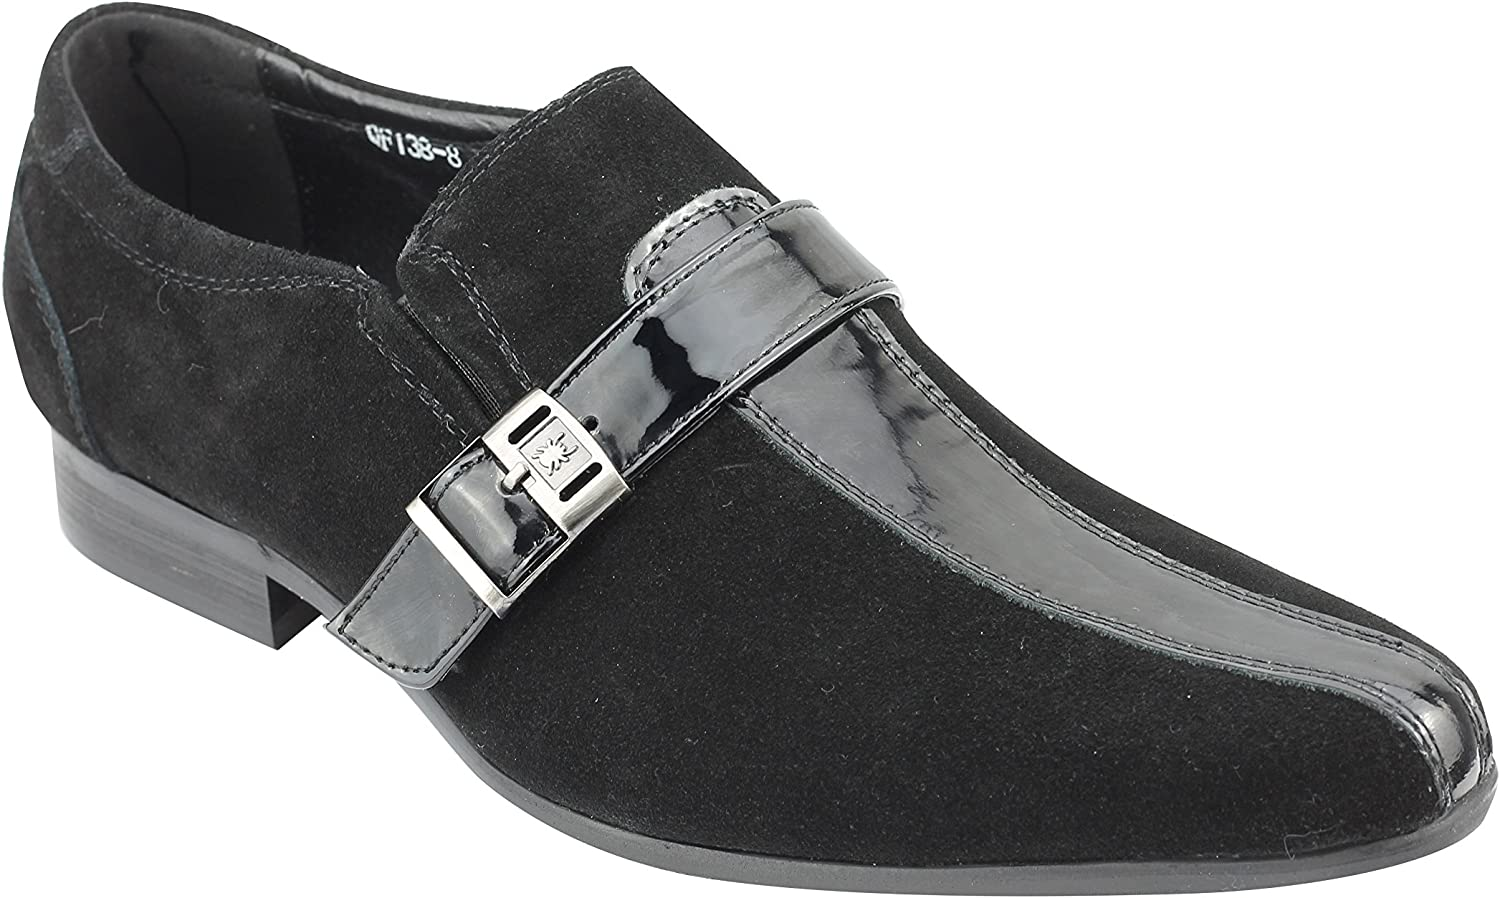 Xposed Mens Real Suede & Patent Leather Black Retro MOD Loafers Smart Casual Monk Strap Dress shoes